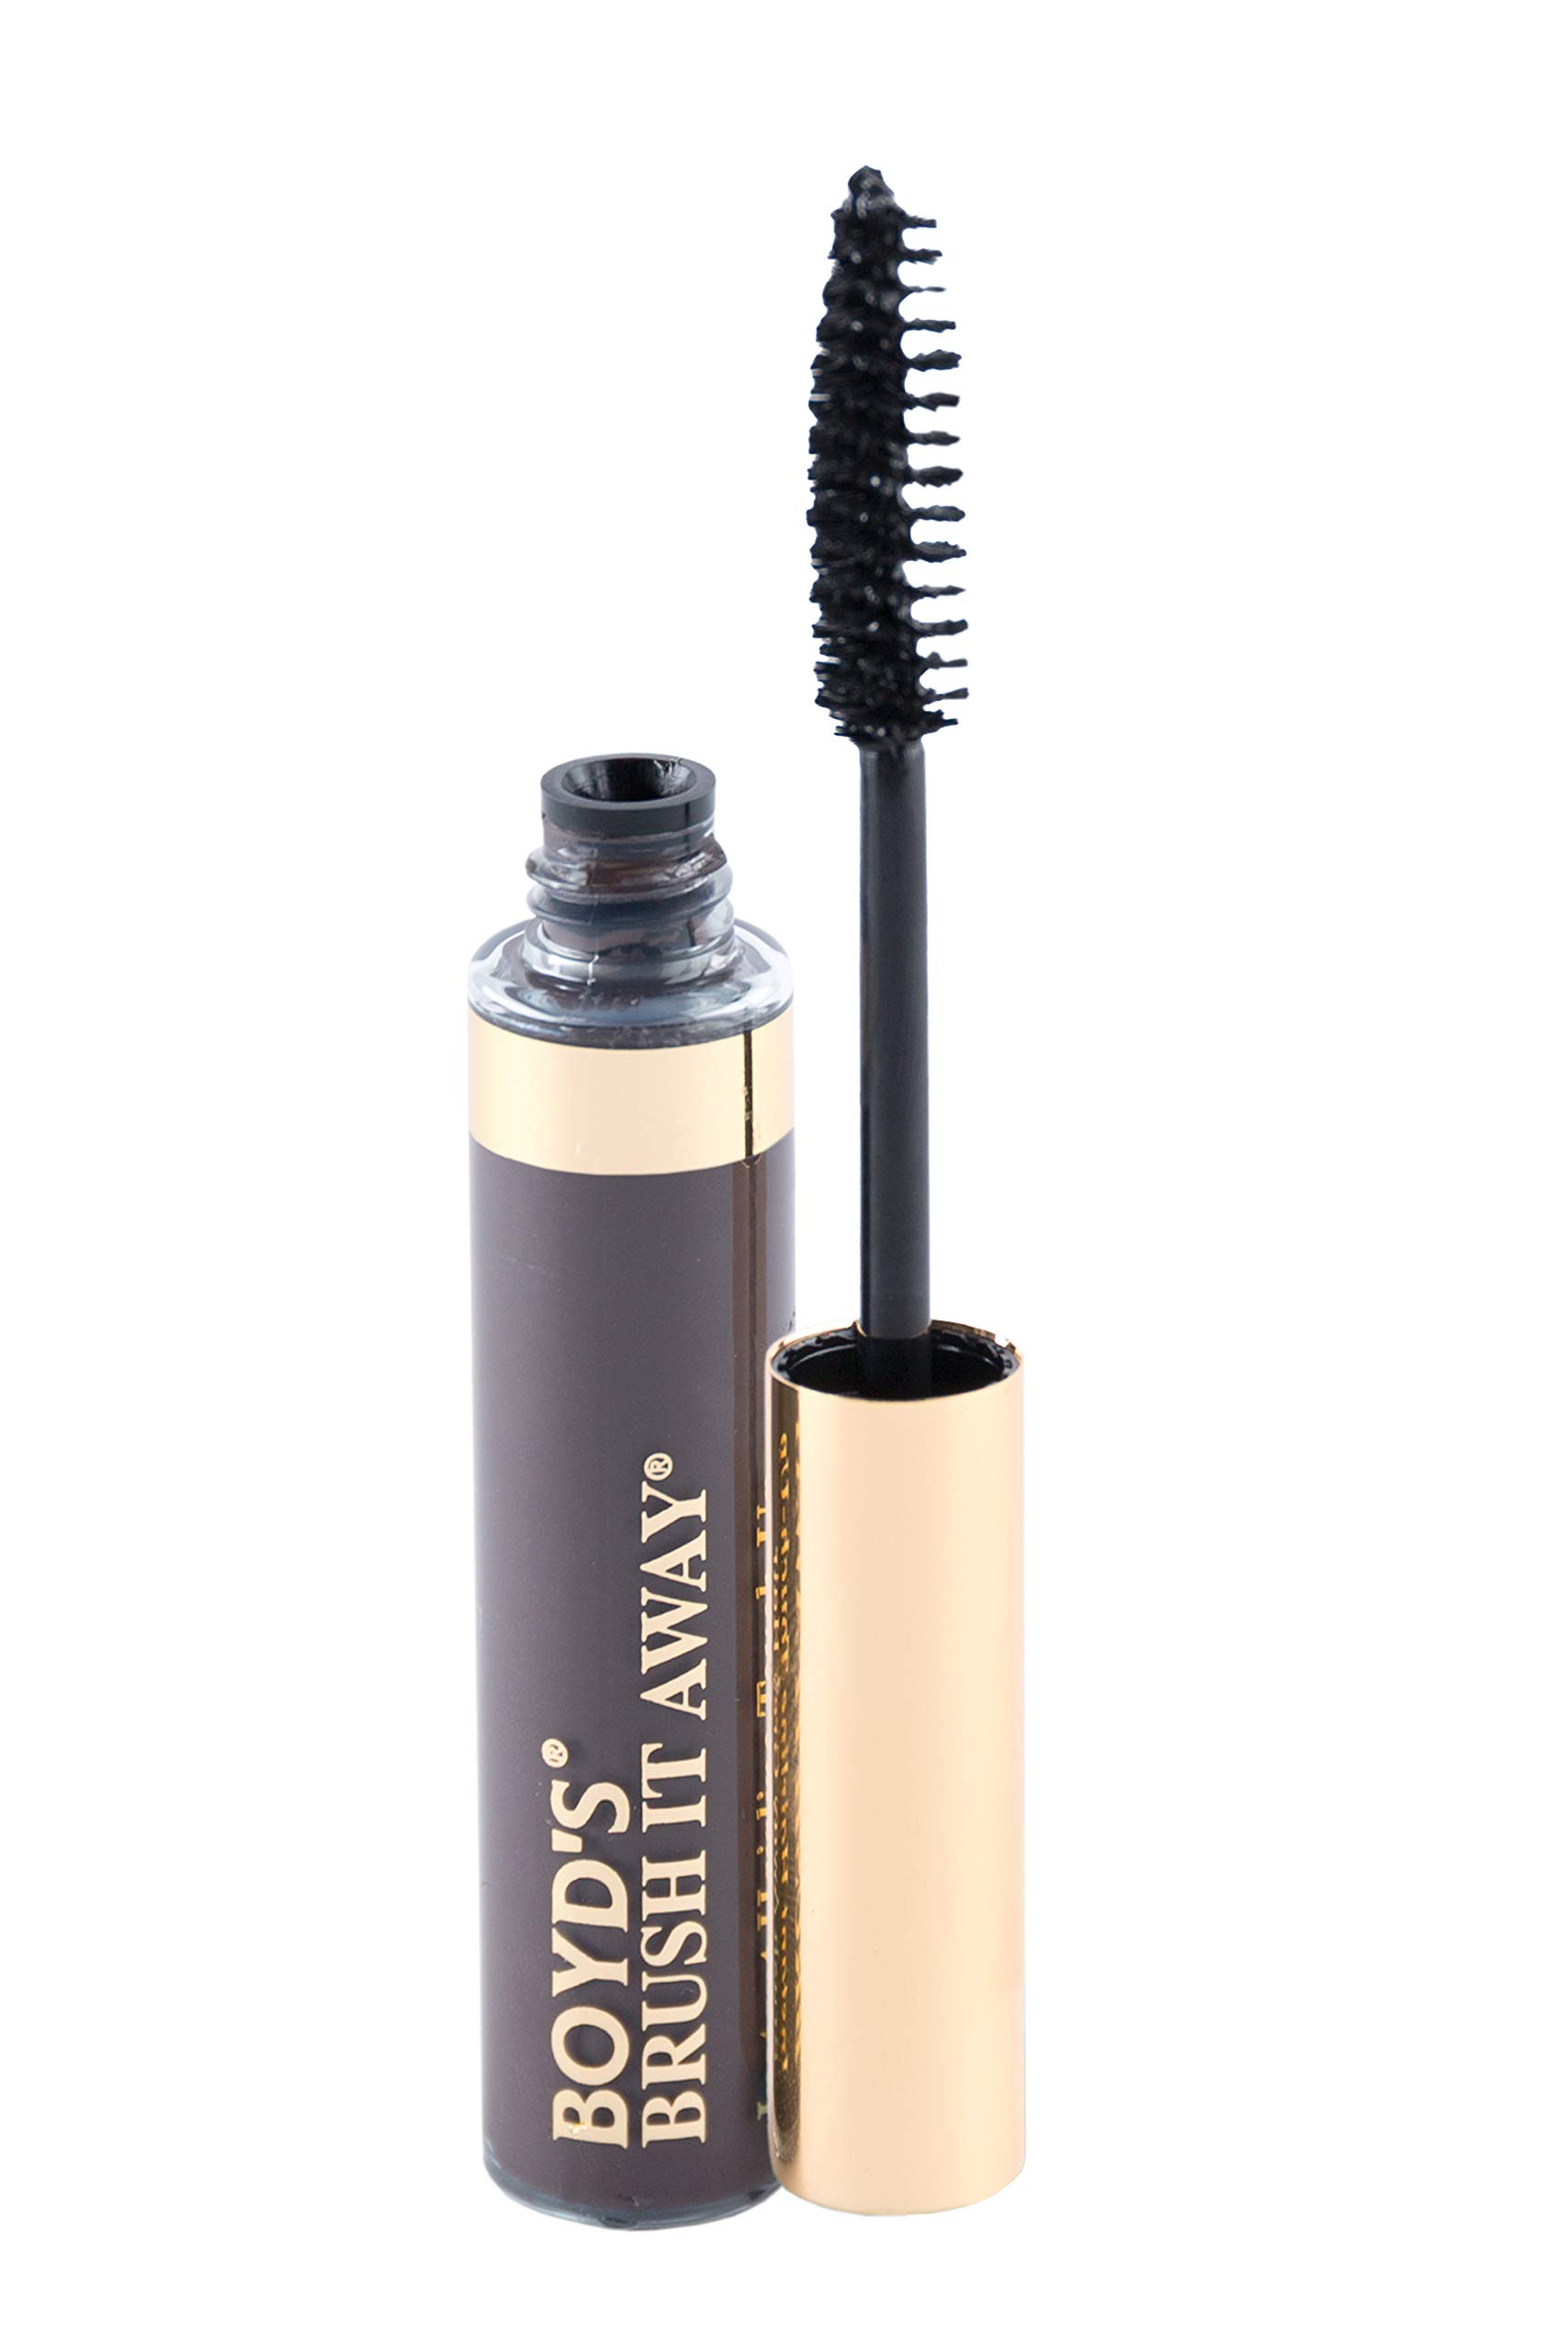 Boyd's Brush It Away Hair Mascara and Root Touch Up (Dark Brown) by BOYD'S MADISON AVENUE